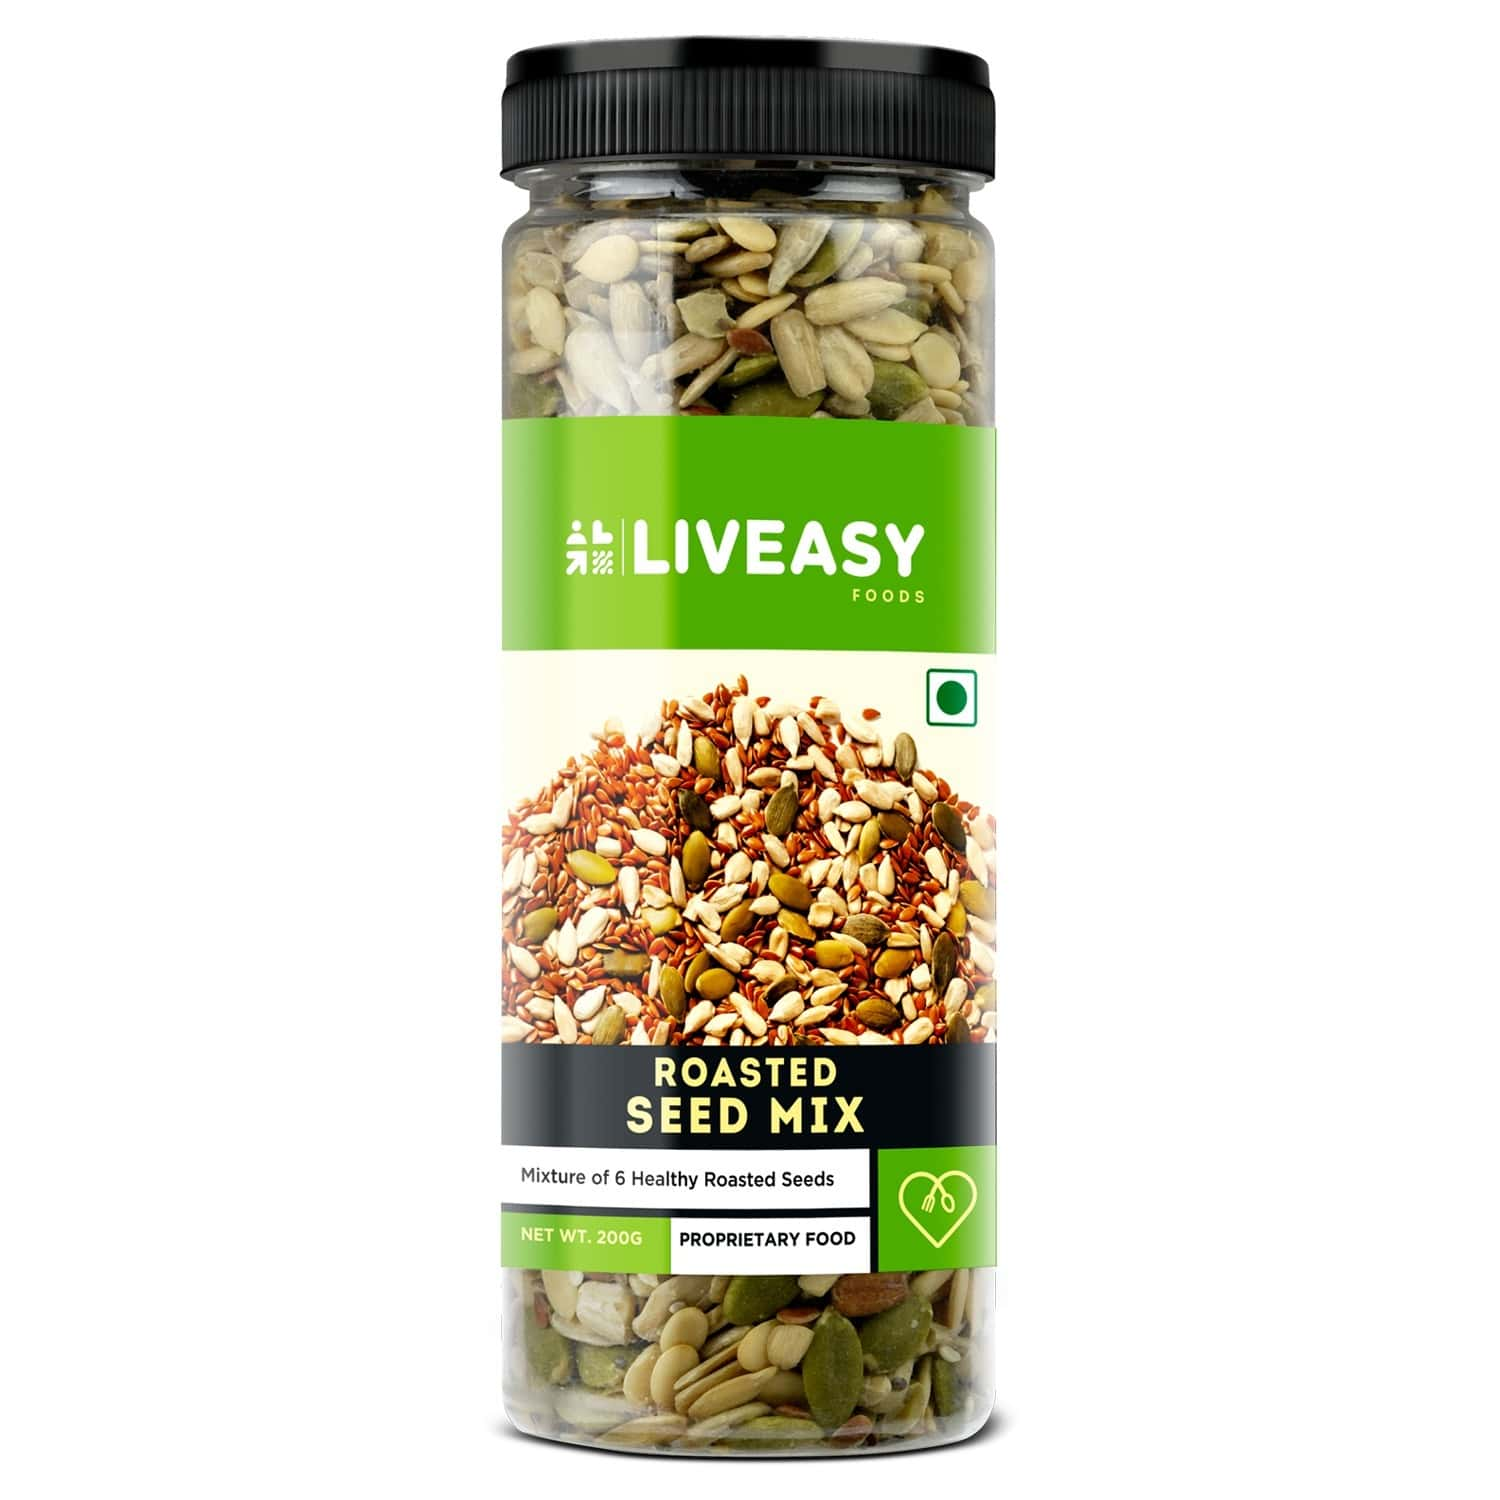 Liveasy Foods Healthy Roasted Seed Mix - Blend Of 6 Fibre Rich Healthy Roasted Seeds